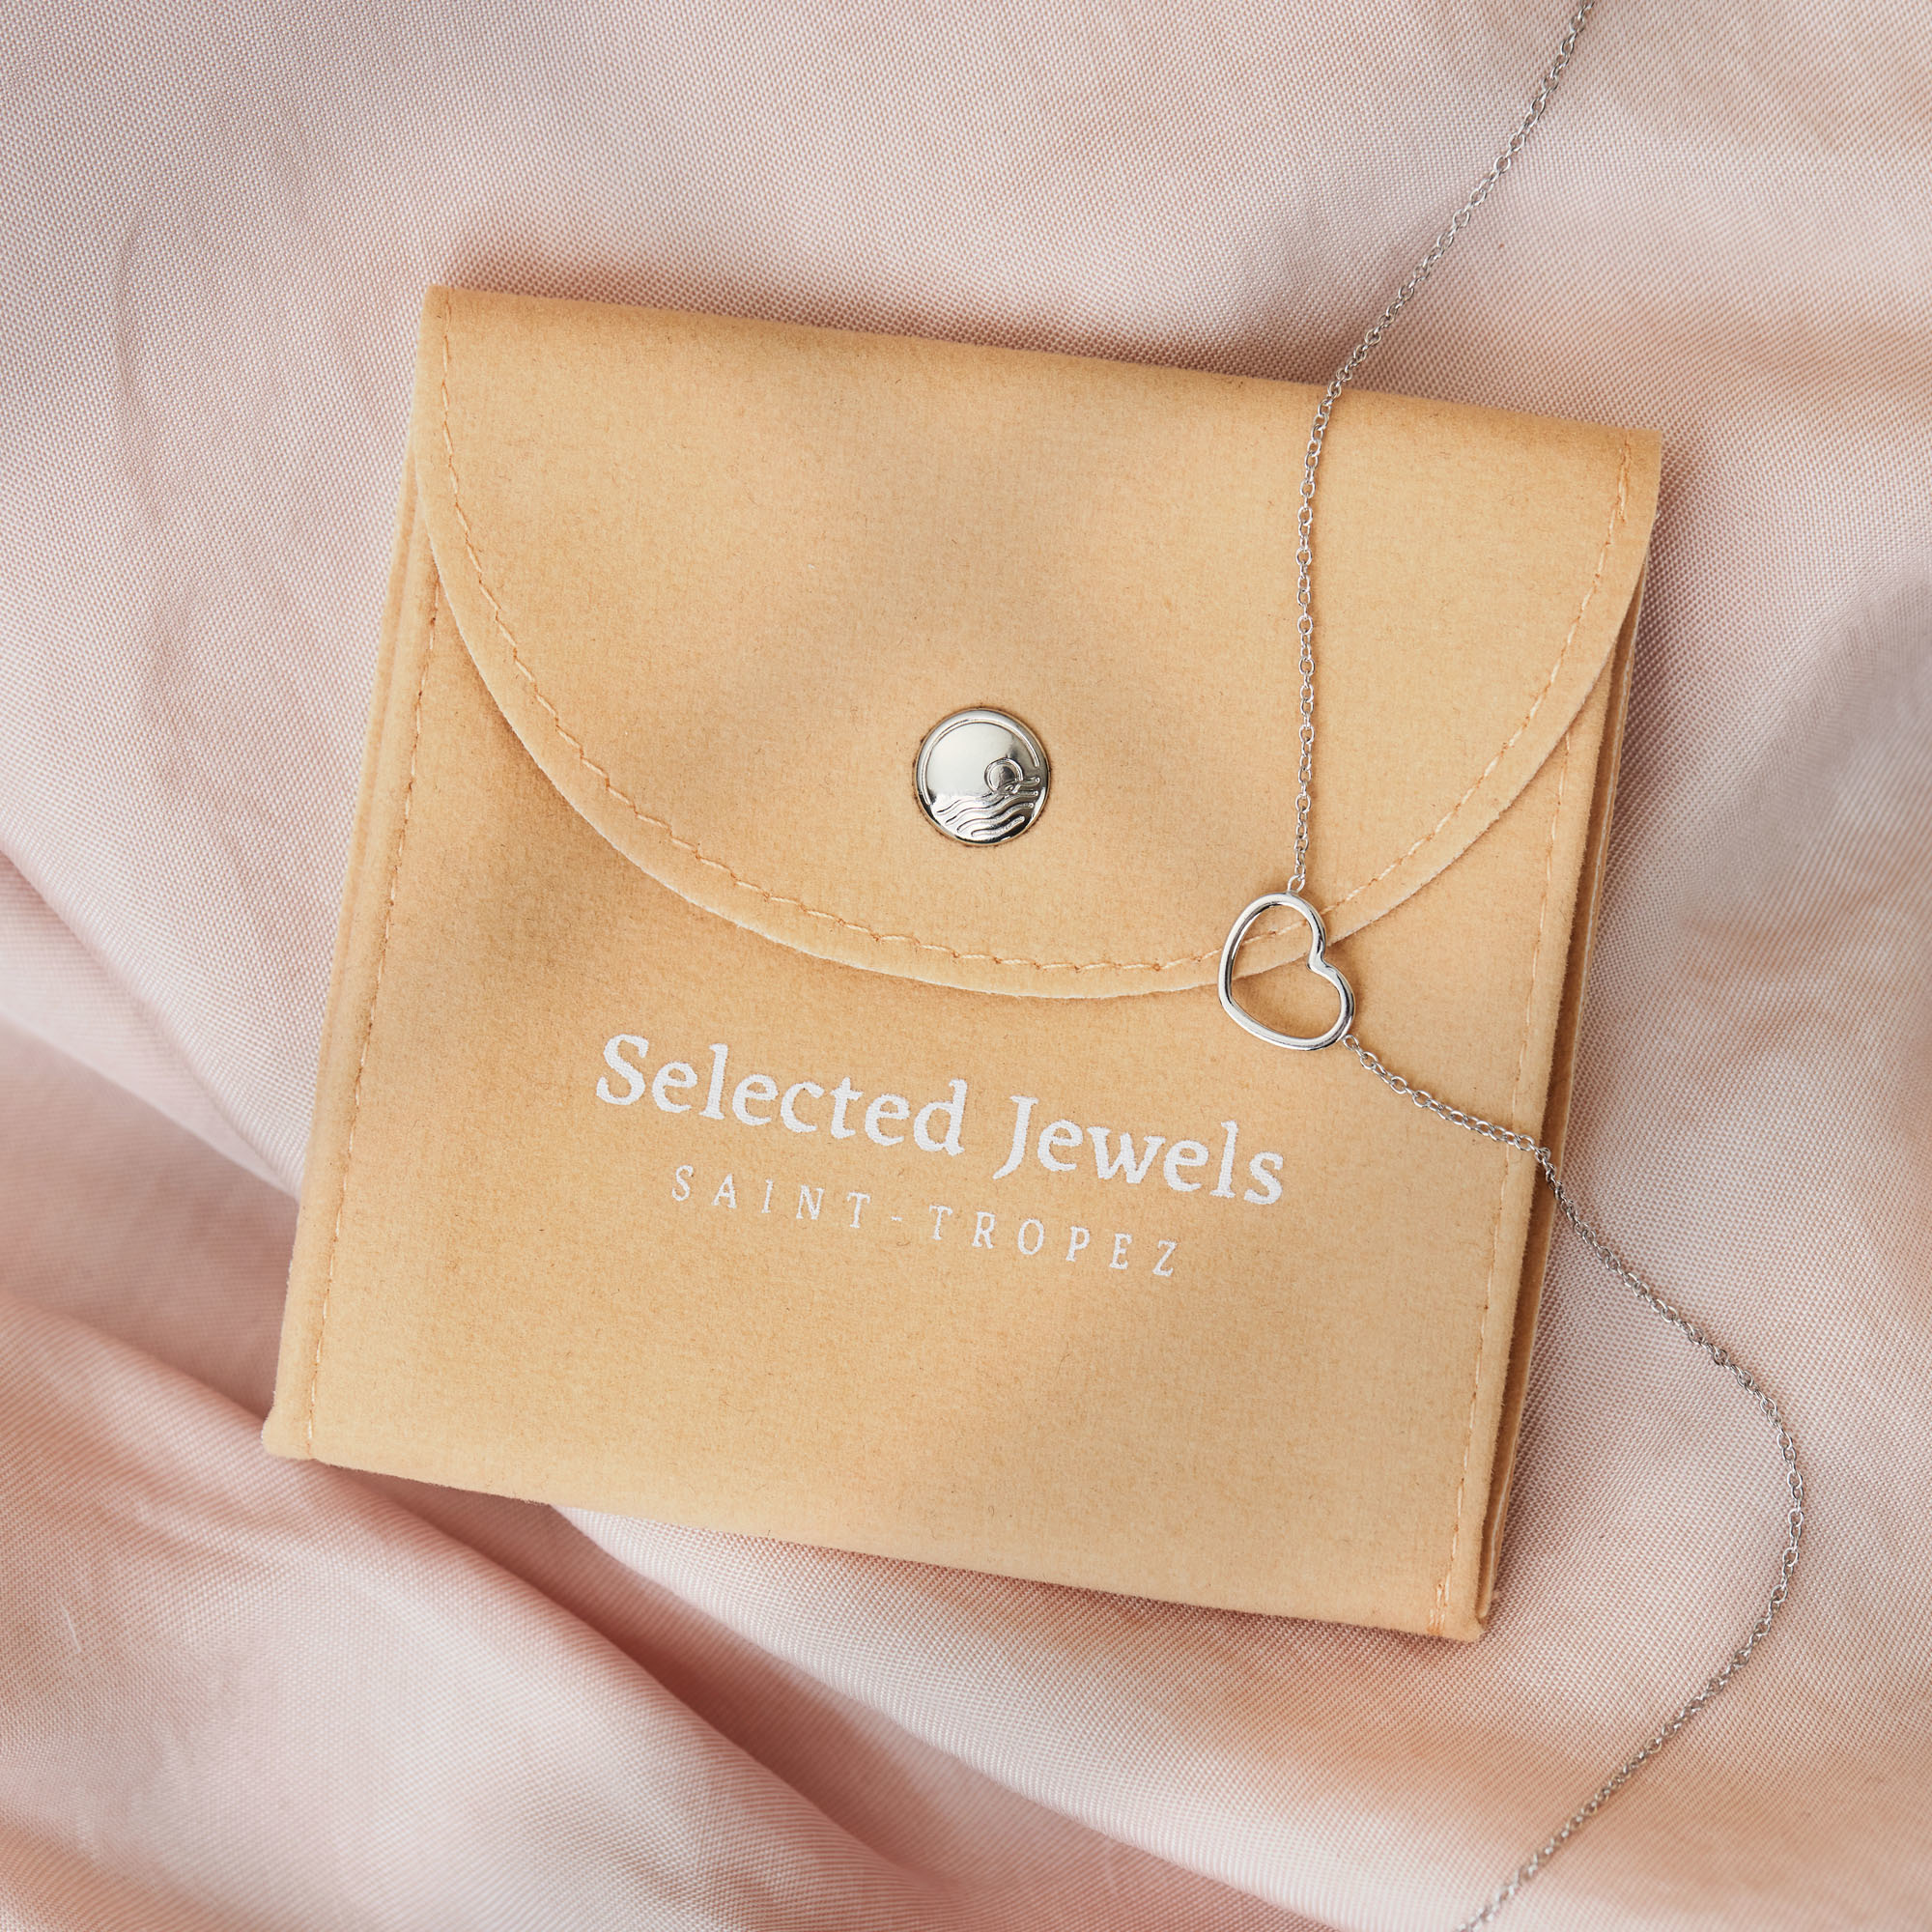 Selected Jewels Aimée 925 sterling zilveren ketting met hartje